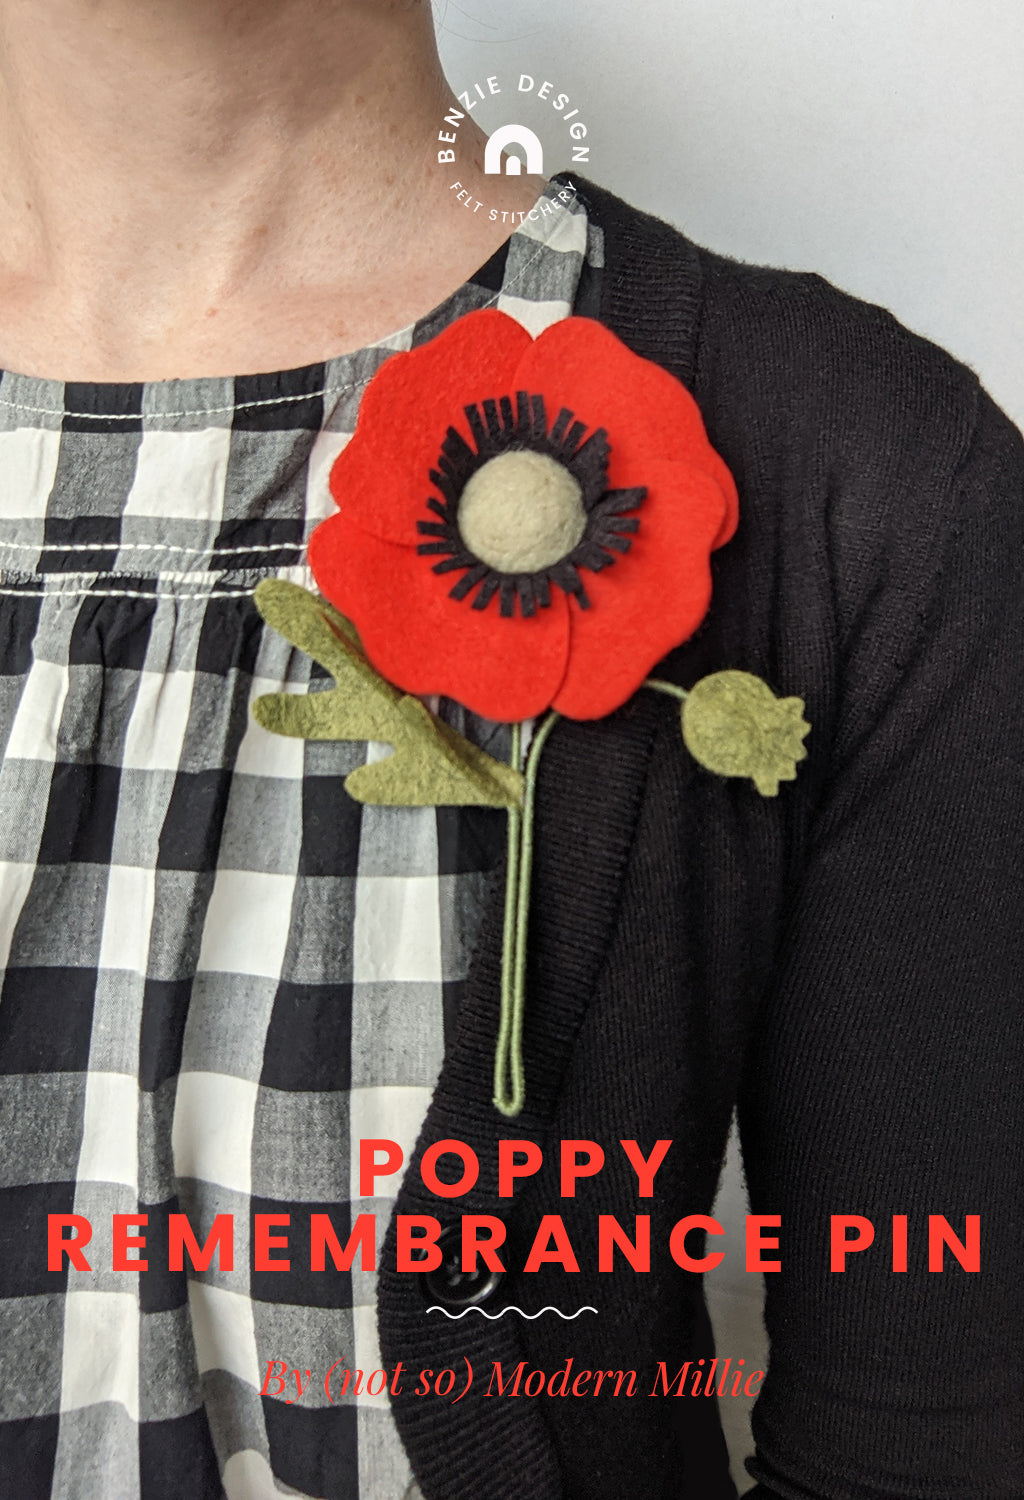 Poppy remembrance pin tutorial